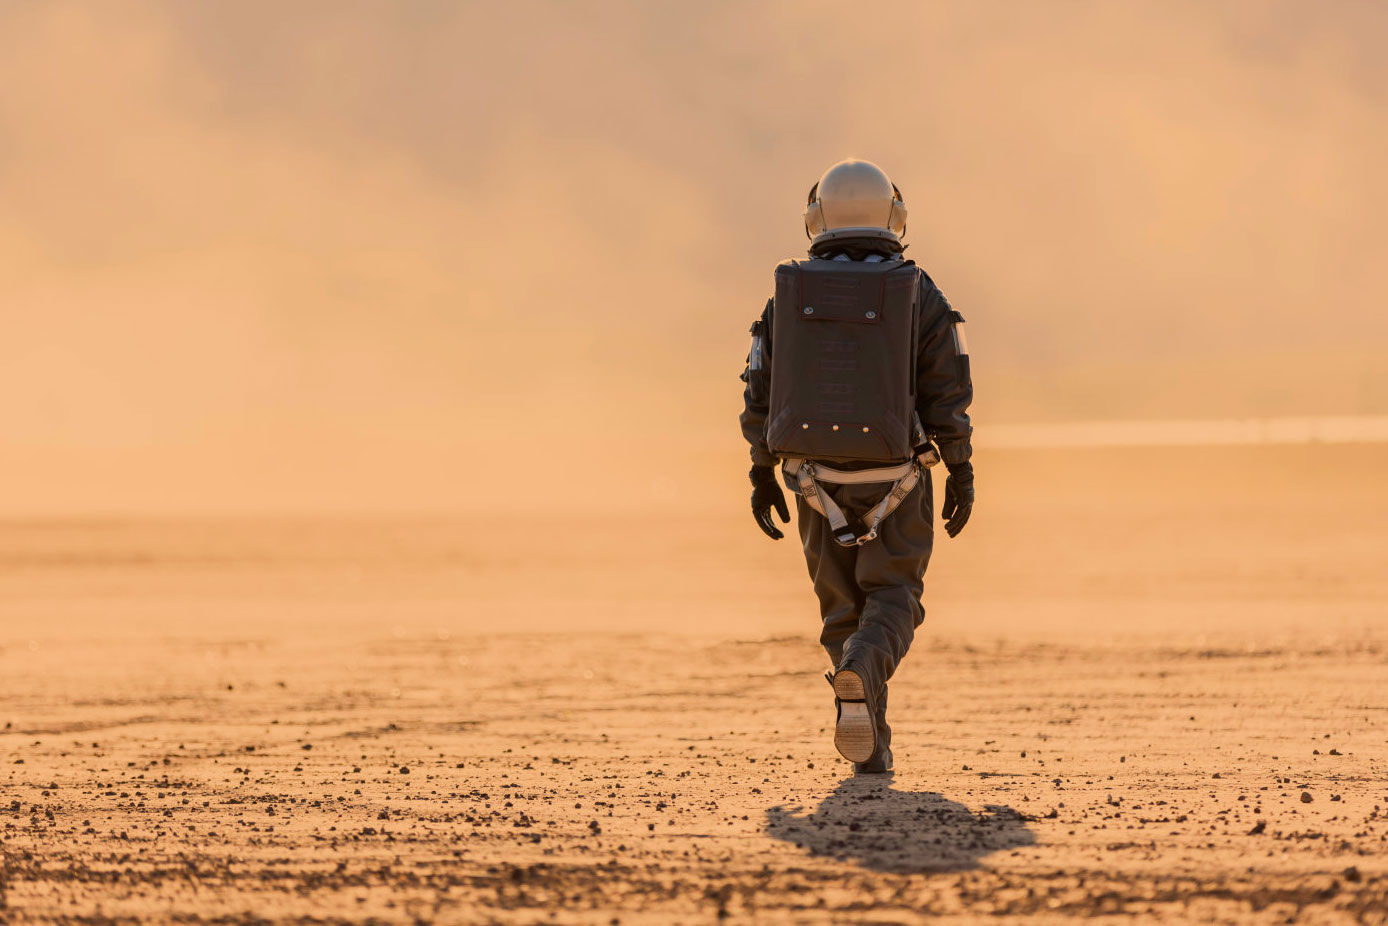 Company that promised one-way ticket to Mars goes bankrupt